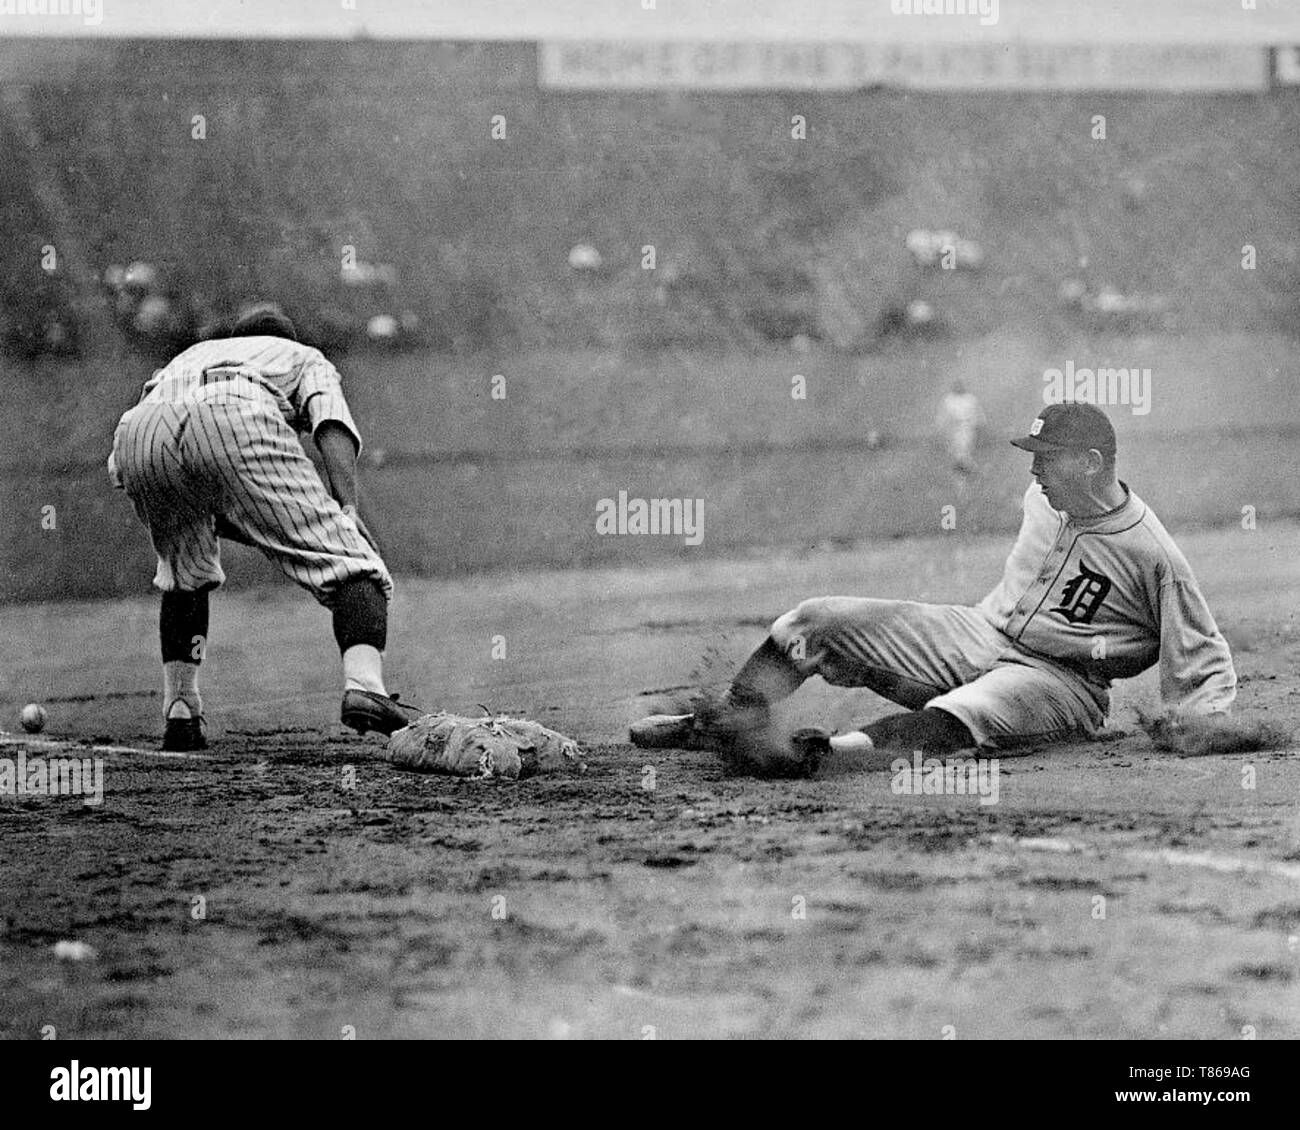 Detroit Tigers player slides safely into third base as a Washington Senators fielder reaches to the left for the ball during a baseball game 1910. Stock Photo